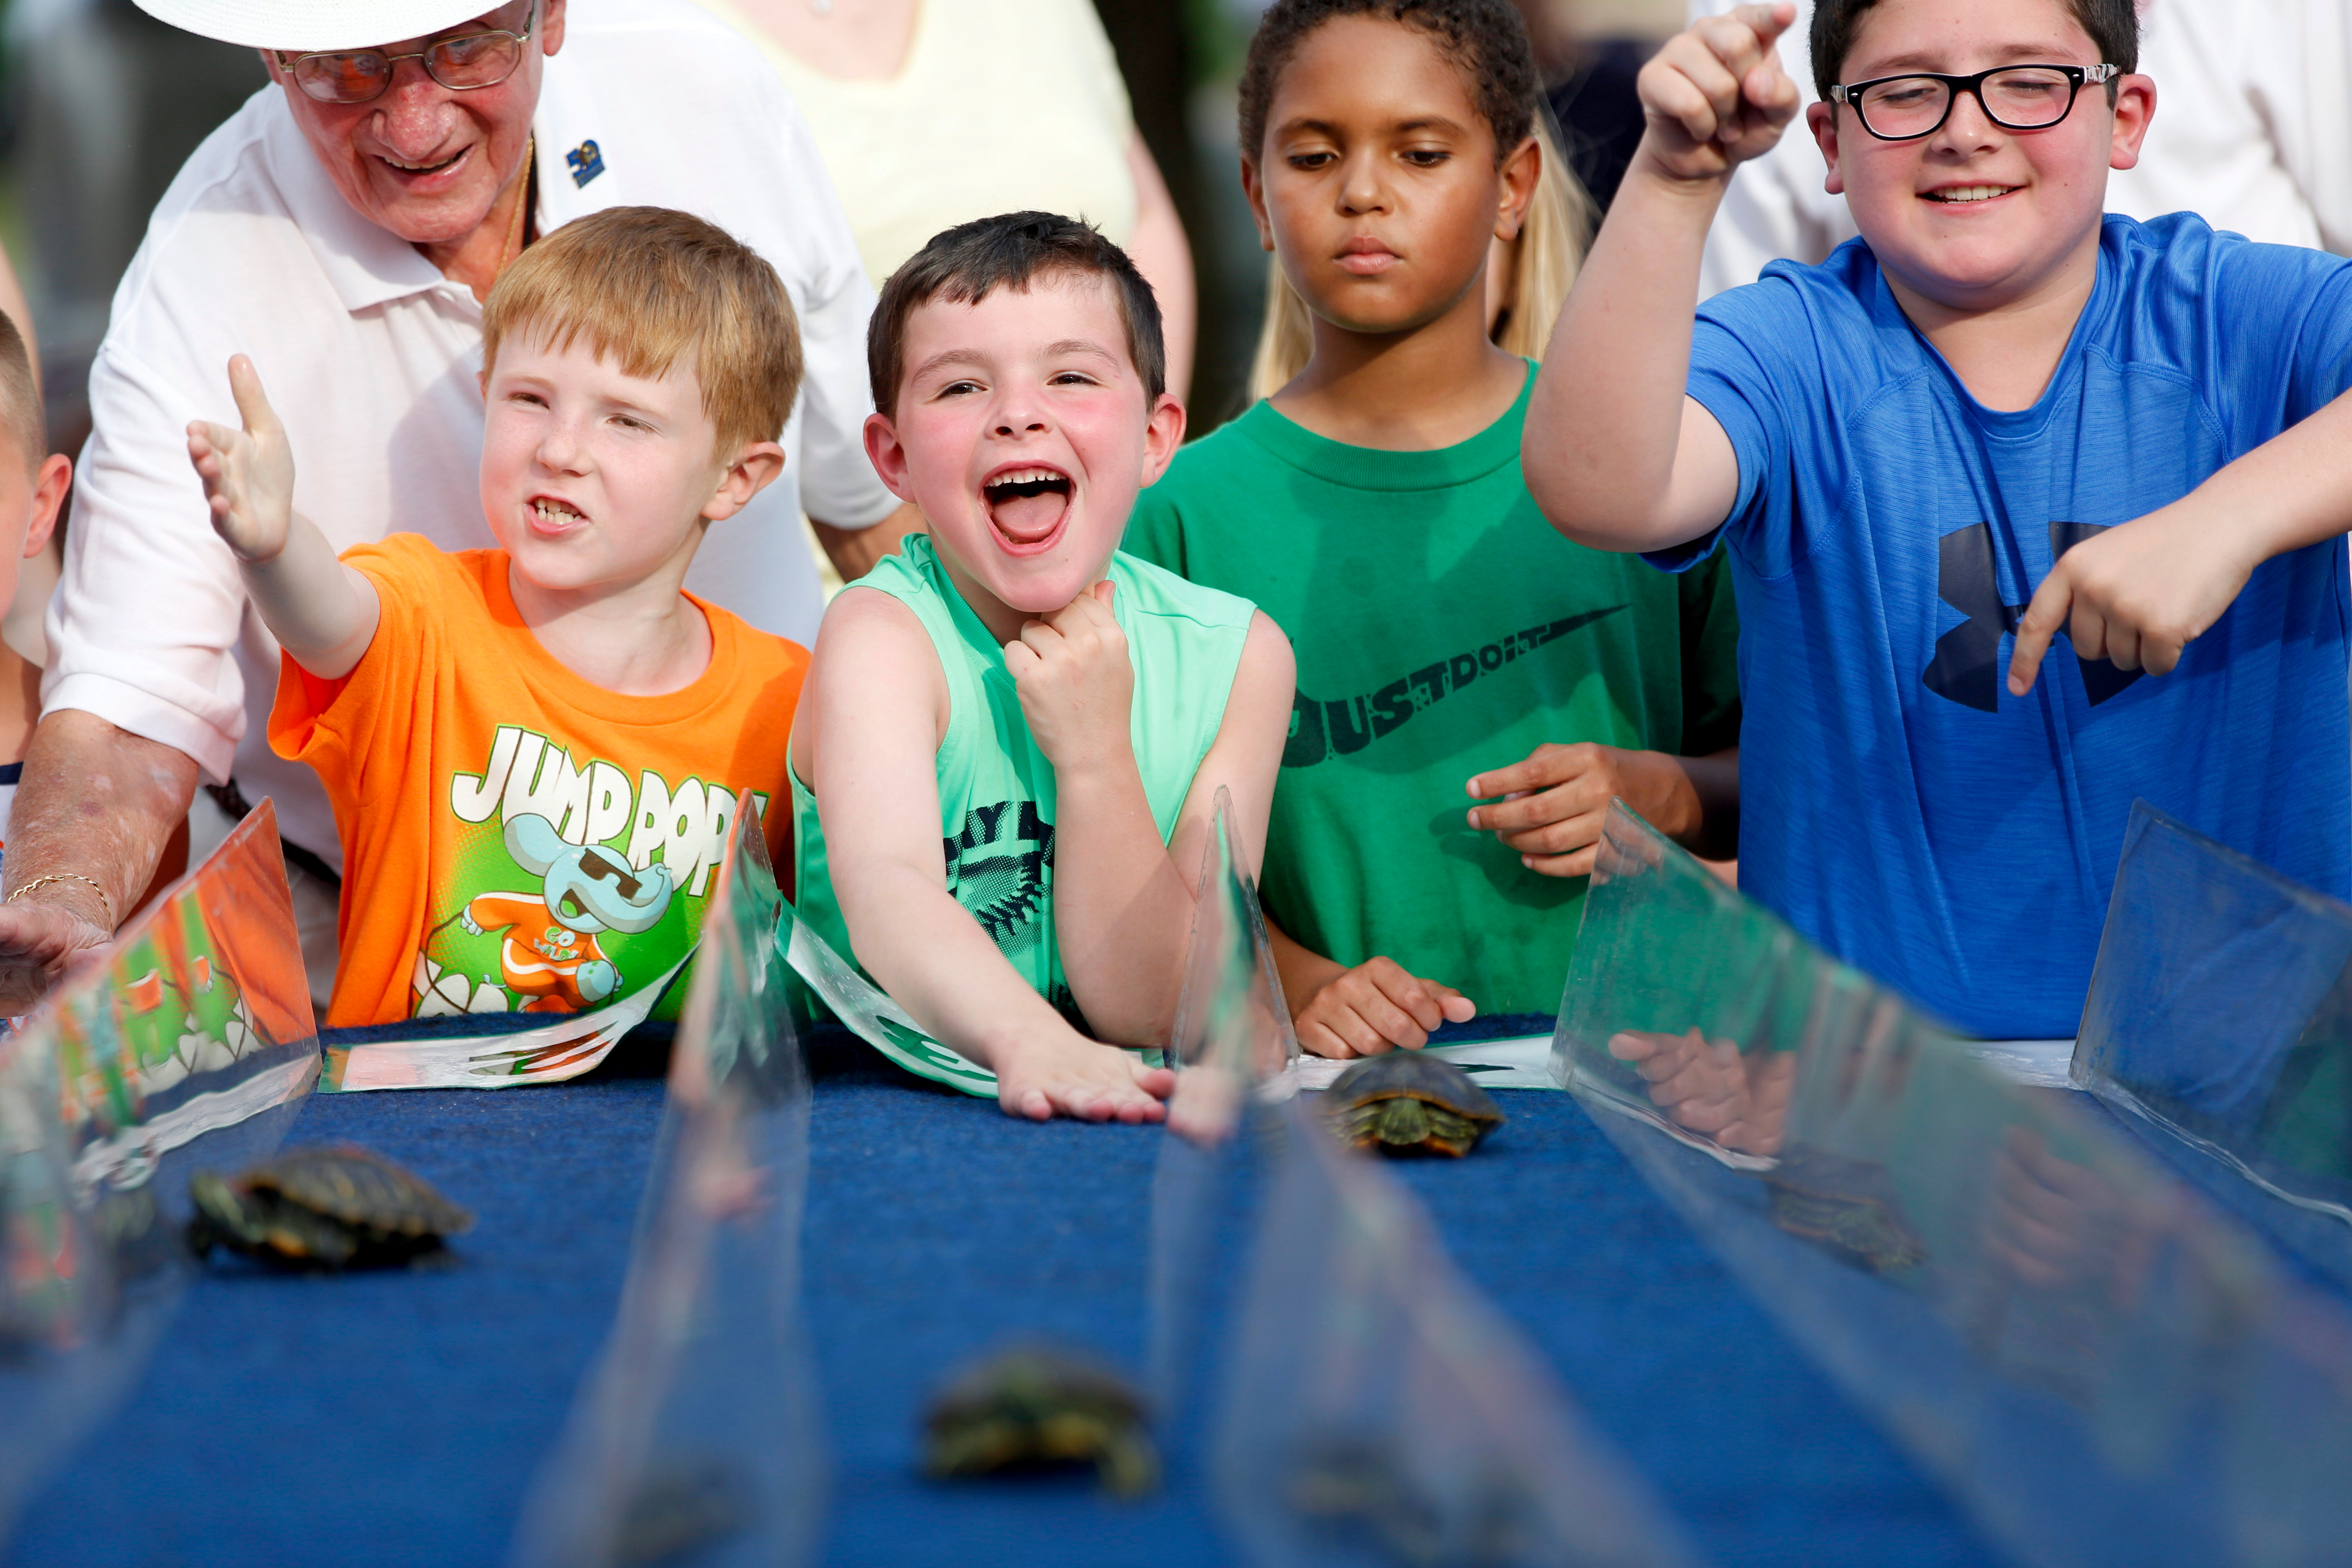 From left, George Kolesar of Boardman, Noah Belgin, 8, of Boardman, John Crilley, 6, of Lowellville, Cole Wildes, 9, of Lowellville and Connor Crilley, 8, of Lowellville, watch and cheer on turtles in the fourth race of the Youngstown Lions Club's 57th Turtle Derby in Lowellville on Monday.